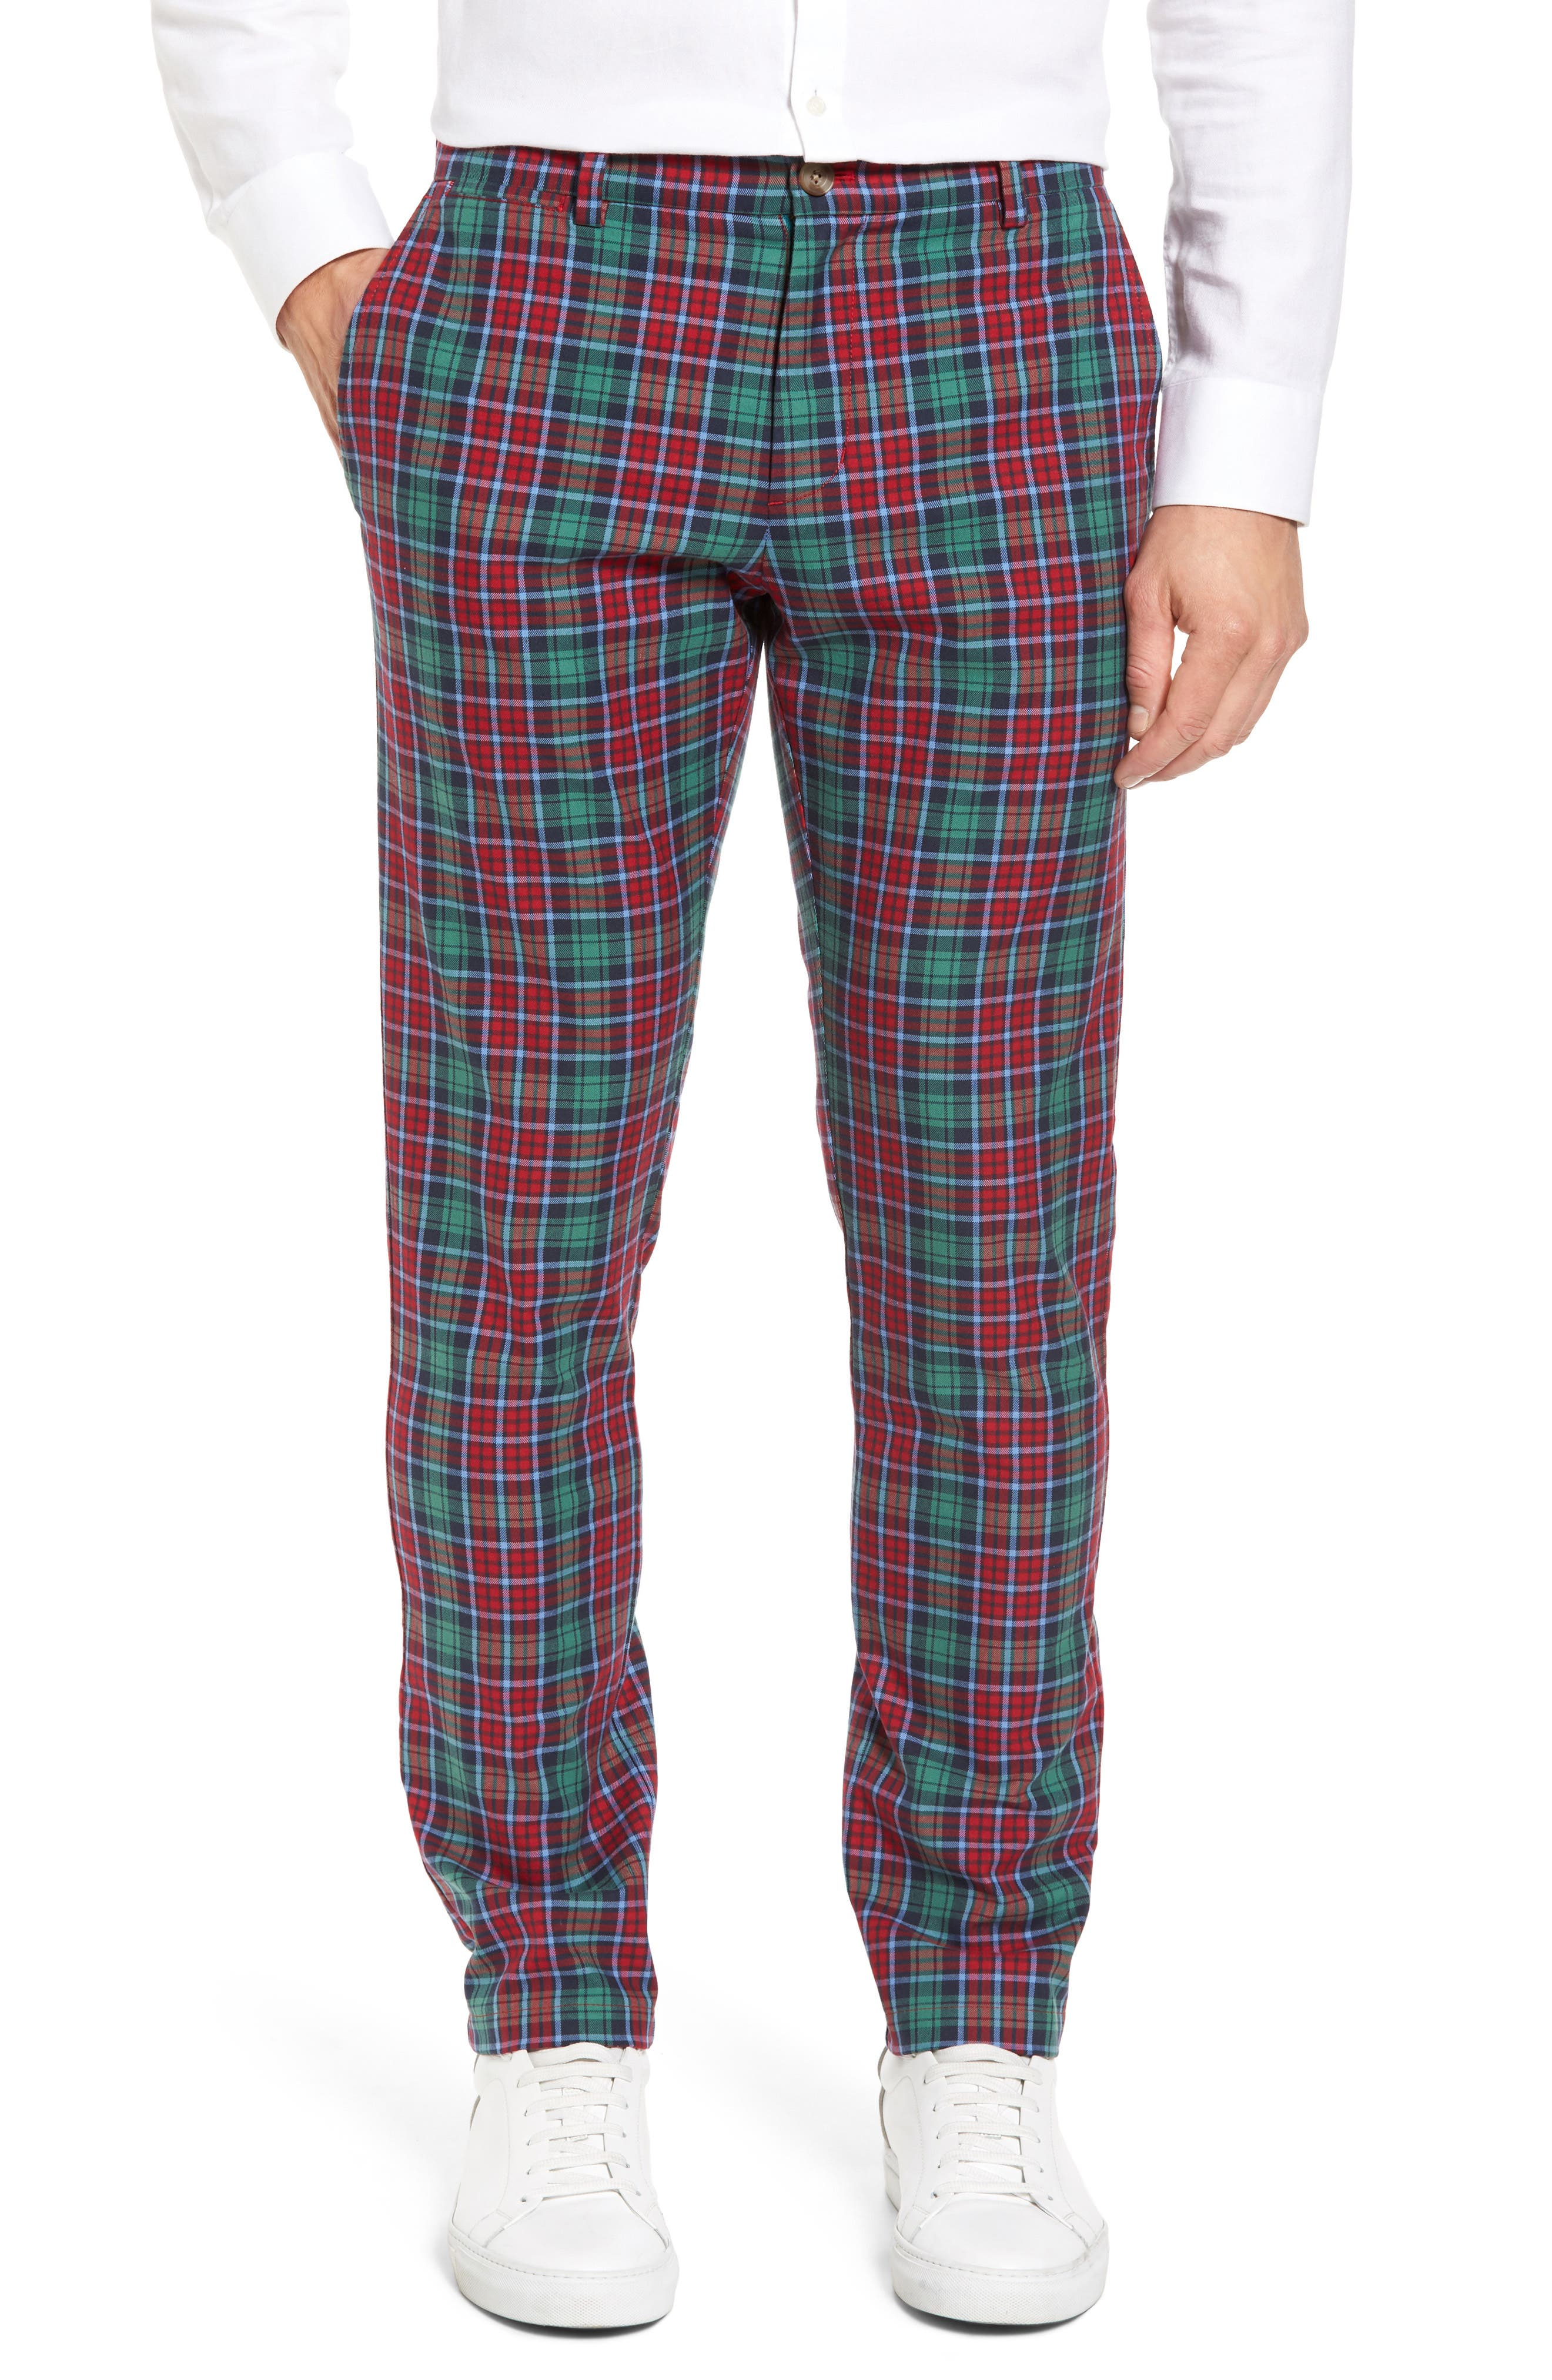 Leddy Park Slim Plaid Pants,                         Main,                         color, Charleston Green